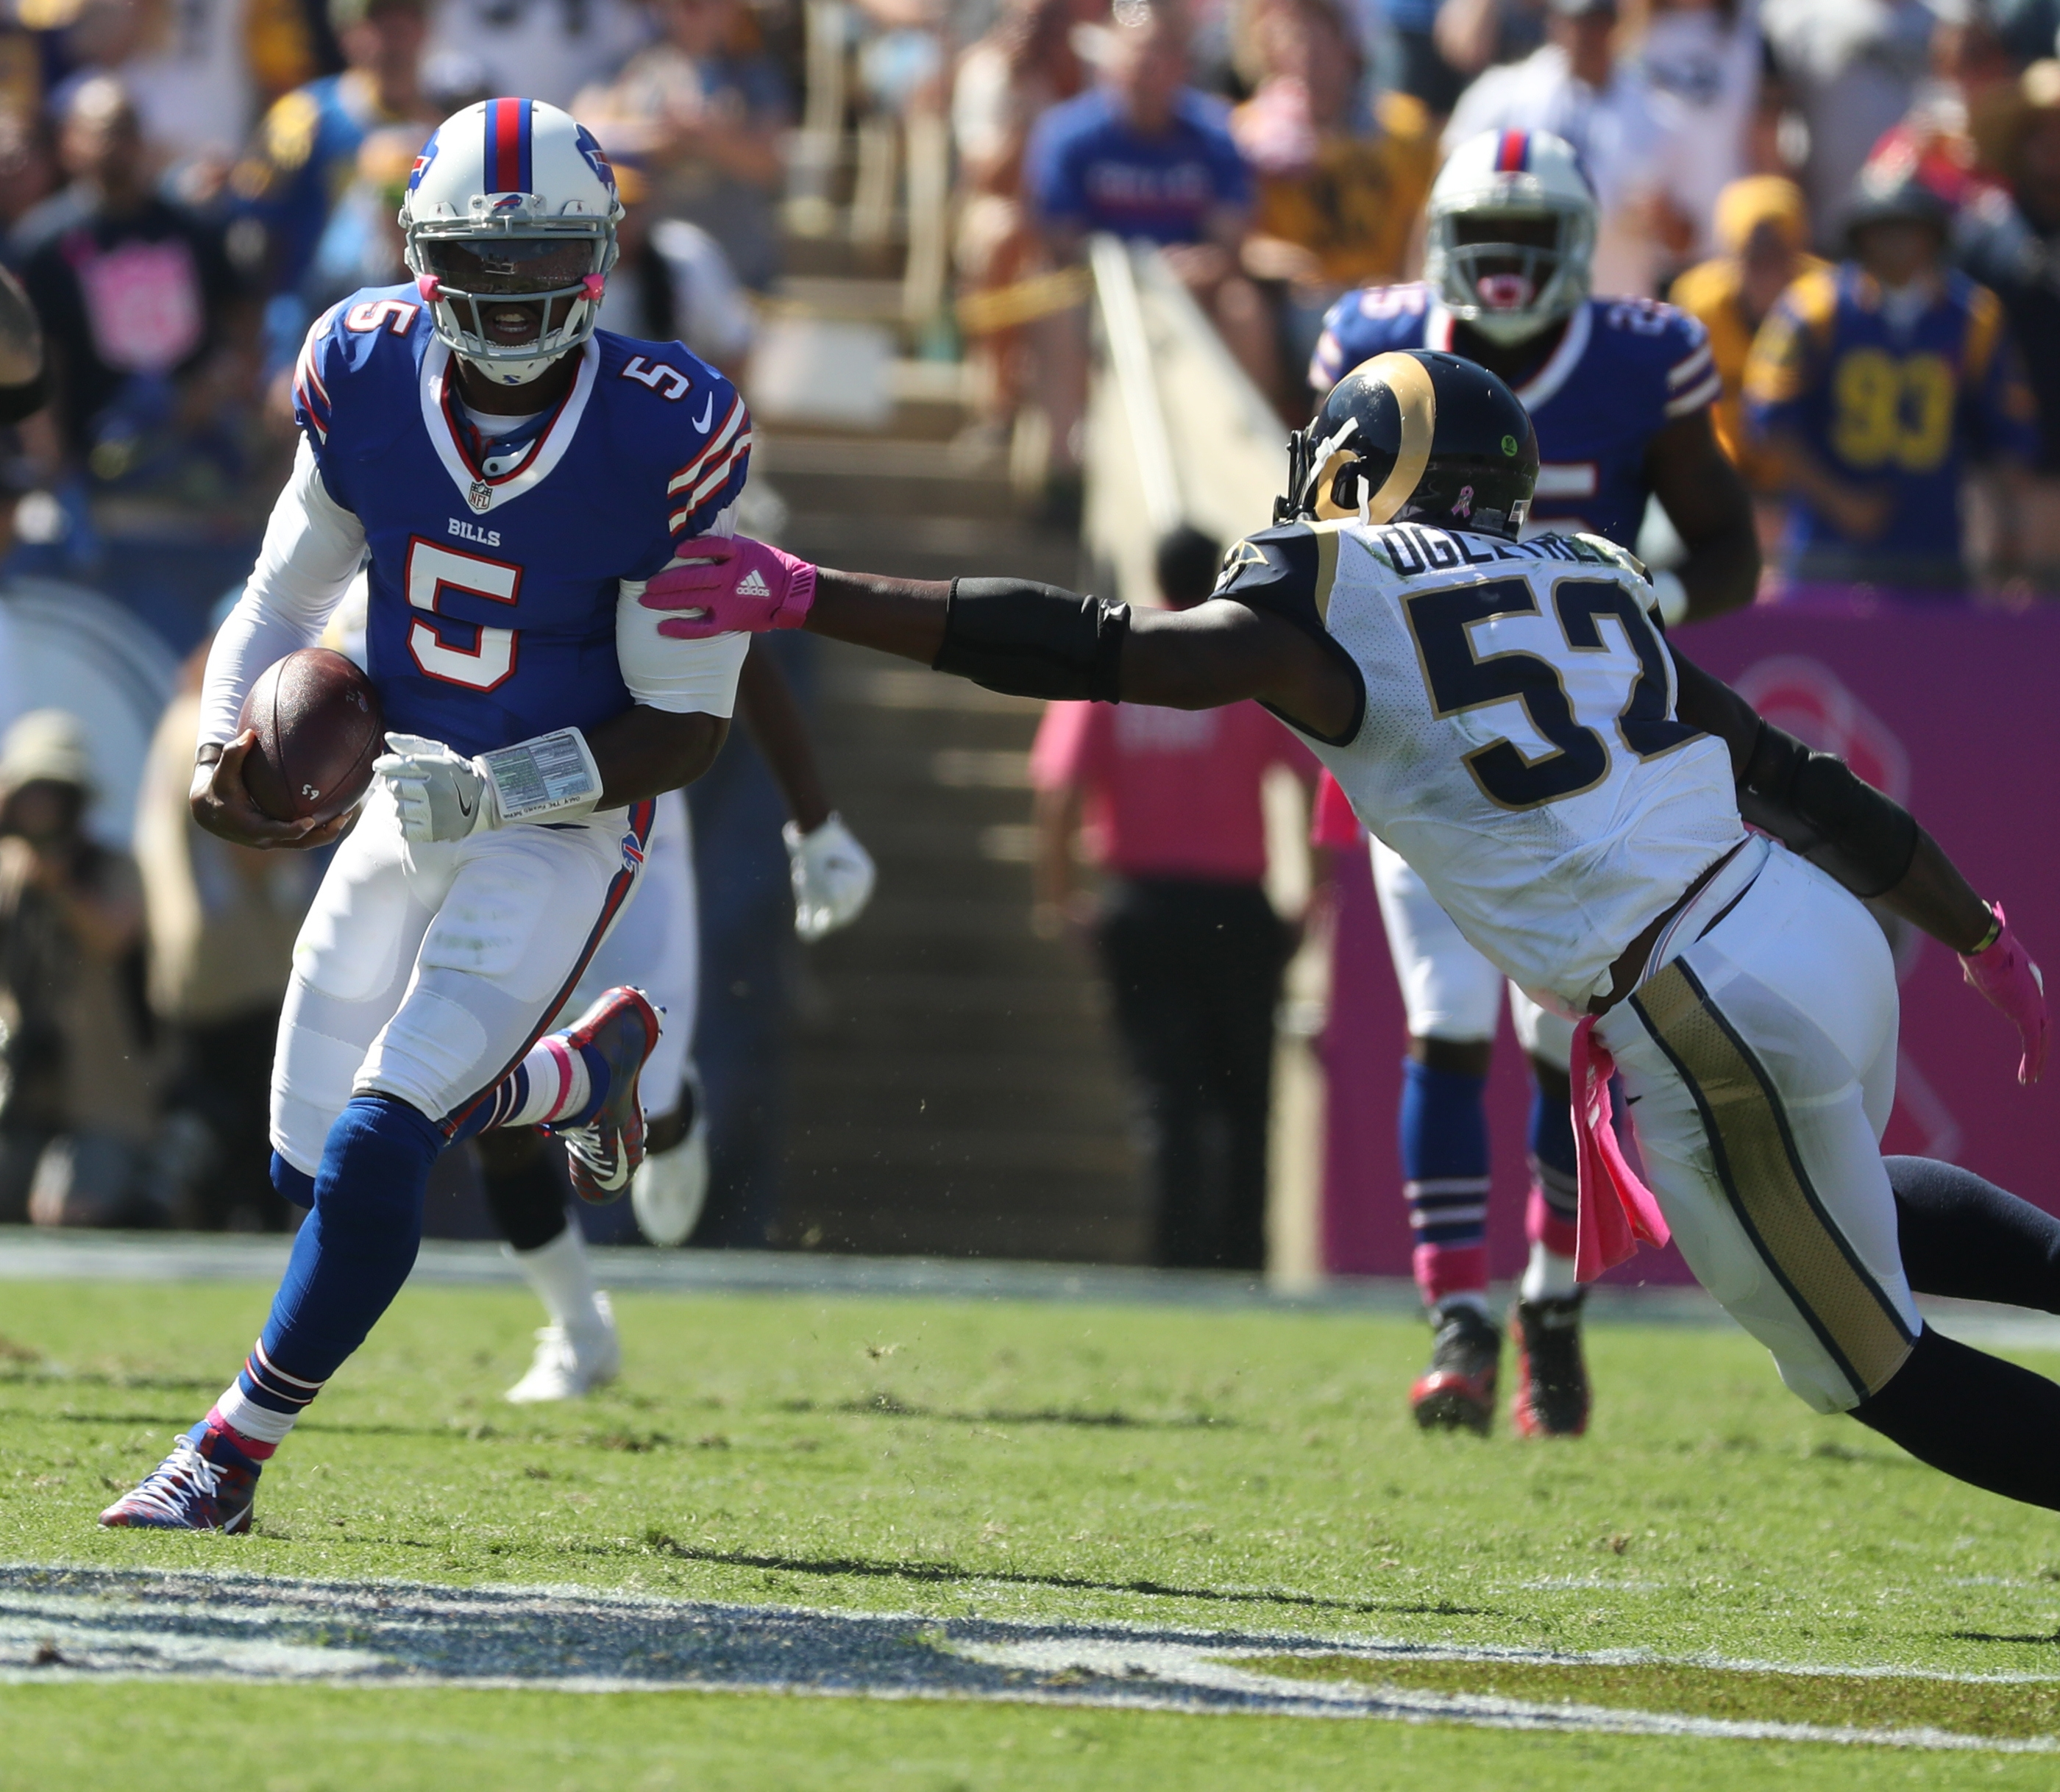 Bills quarterback Tyrod Taylor made things happen with his legs, but his passing game left much to be desired in Sunday's win over the Rams in Los Angeles. (James P. McCoy/Buffalo News)